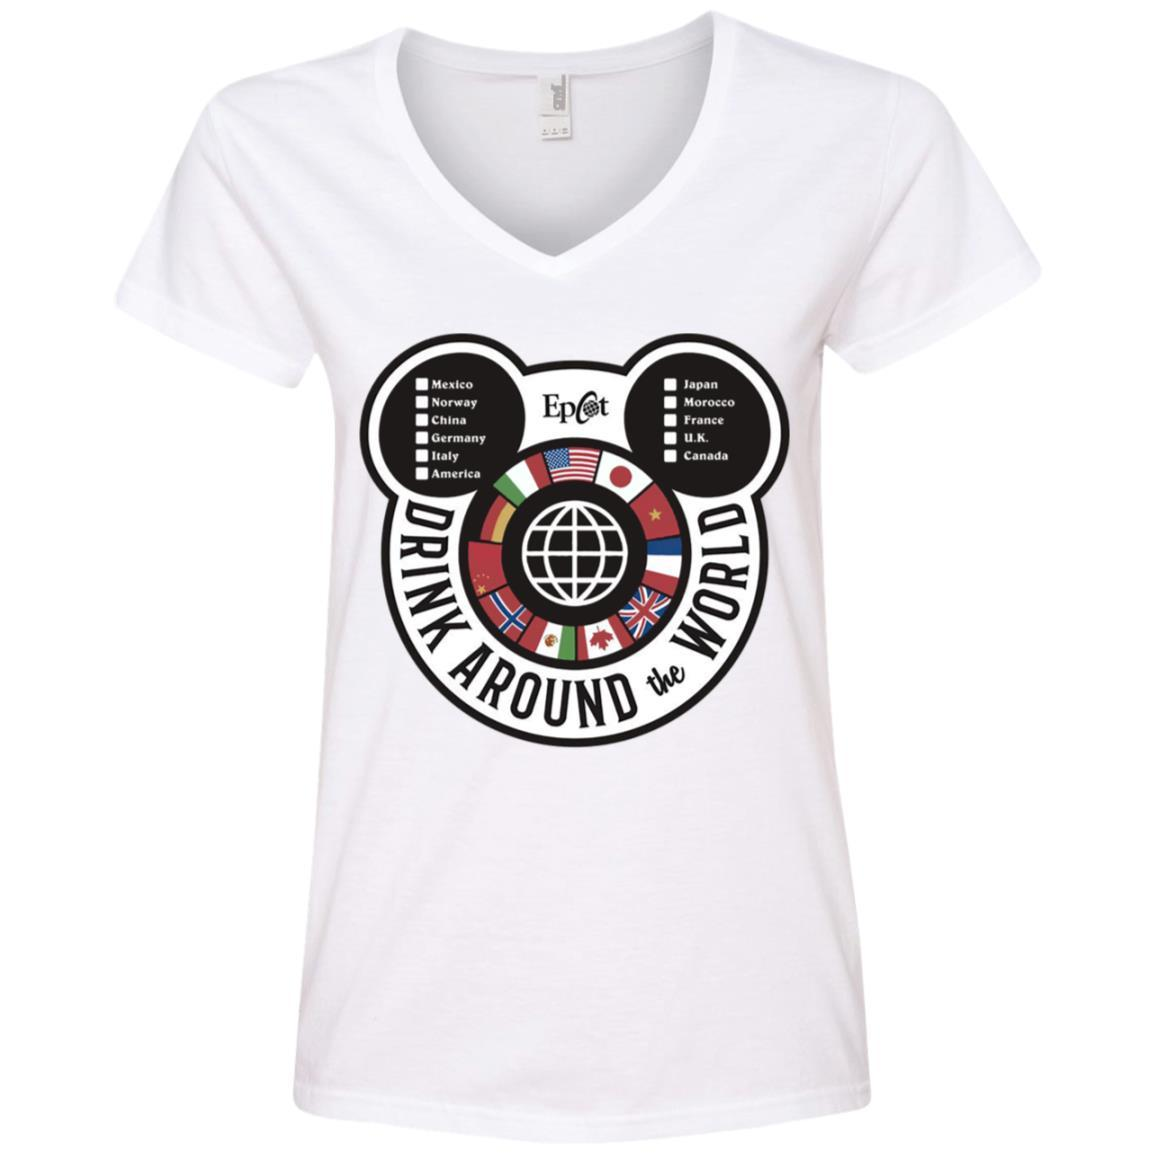 Drink Around the World - EPCOT Checklist - Ladies' V-Neck T-Shirt White / 2XL